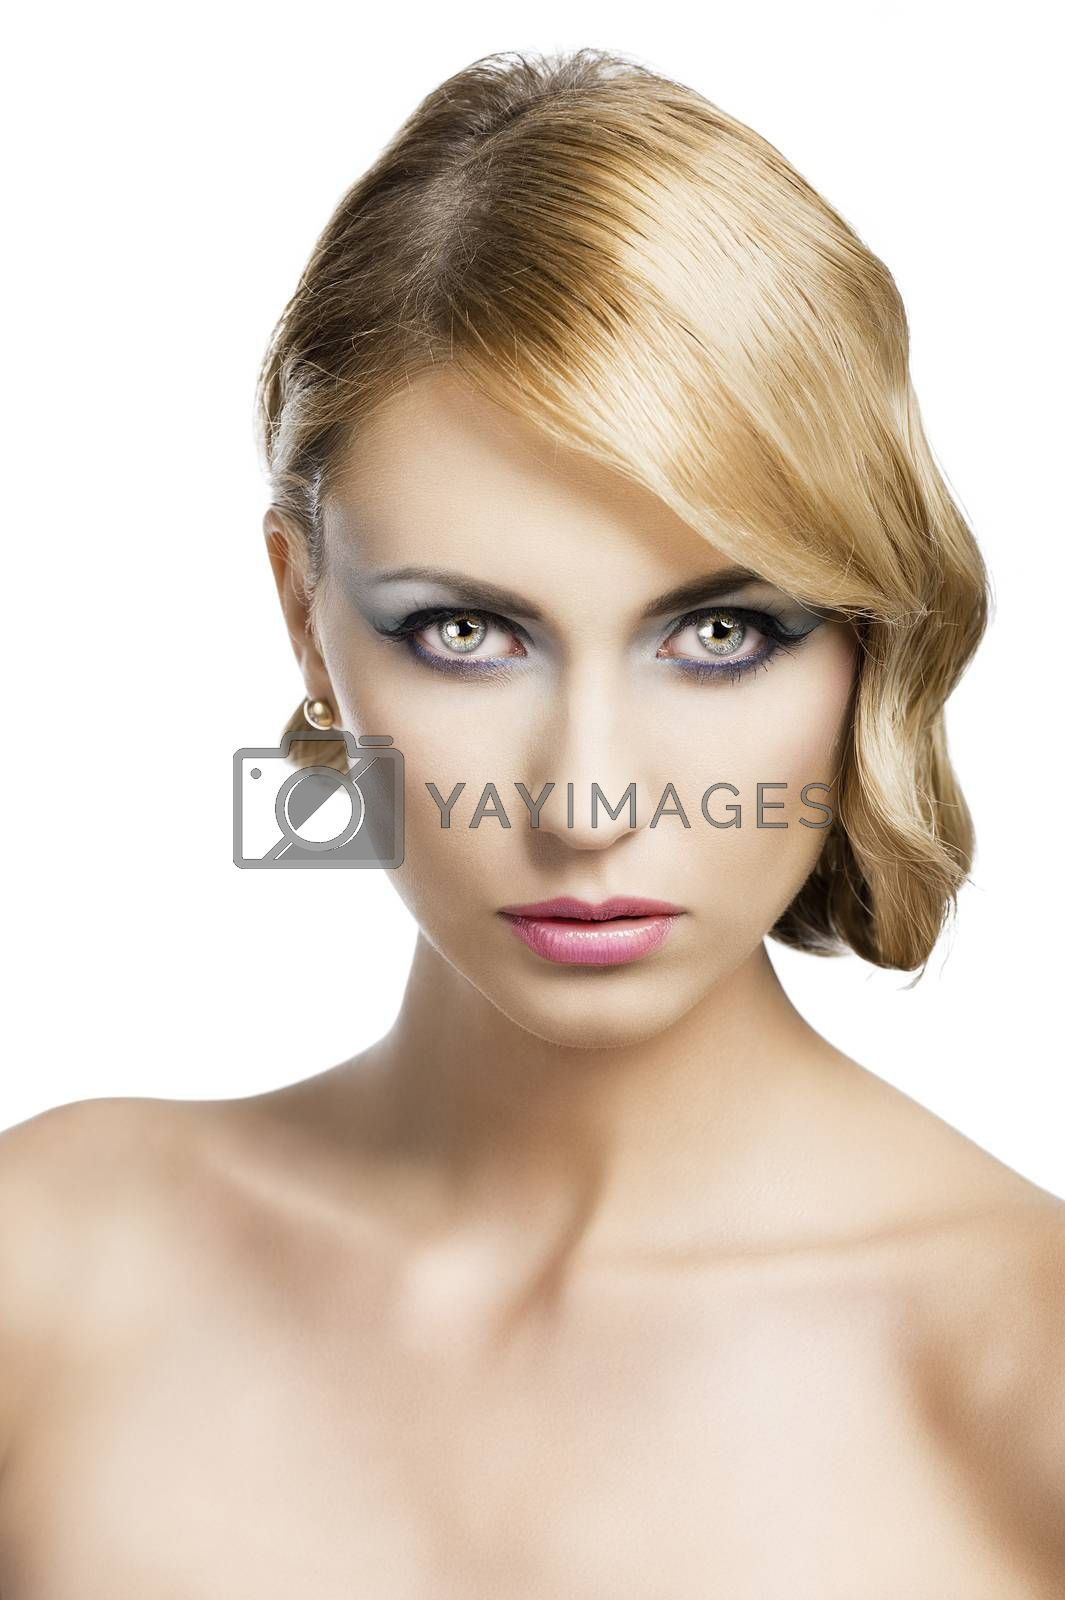 Royalty free image of blond vintage girl portrait, she si in front of the camera by fotoCD